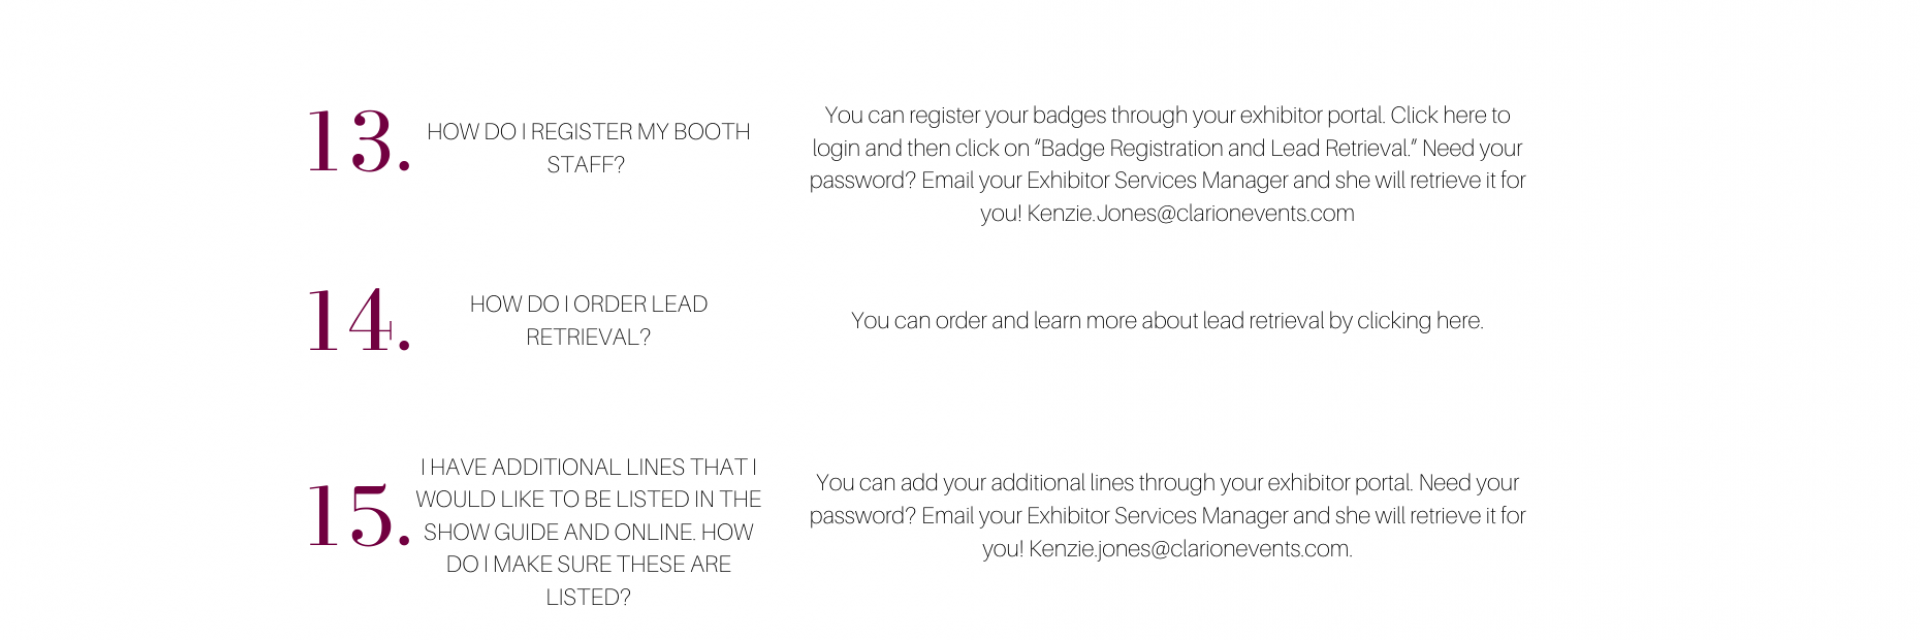 """HOW DO I REGISTER MY BOOTH STAFF?   You can register your badges through your exhibitor portal. Click here to login and then click on """"Badge Registration and Lead Retrieval."""" Need your password? Email your Exhibitor Services Manager and she will retrieve it for you! Kenzie.Jones@clarionevents.com    HOW DO I ORDER LEAD RETRIEVAL? You can order and learn more about lead retrieval here   I HAVE ADDITIONAL LINES THAT I WOULD LIKE TO BE LISTED IN THE SHOW GUIDE AND ONLINE. HOW DO I MAKE SURE THESE ARE LIS"""